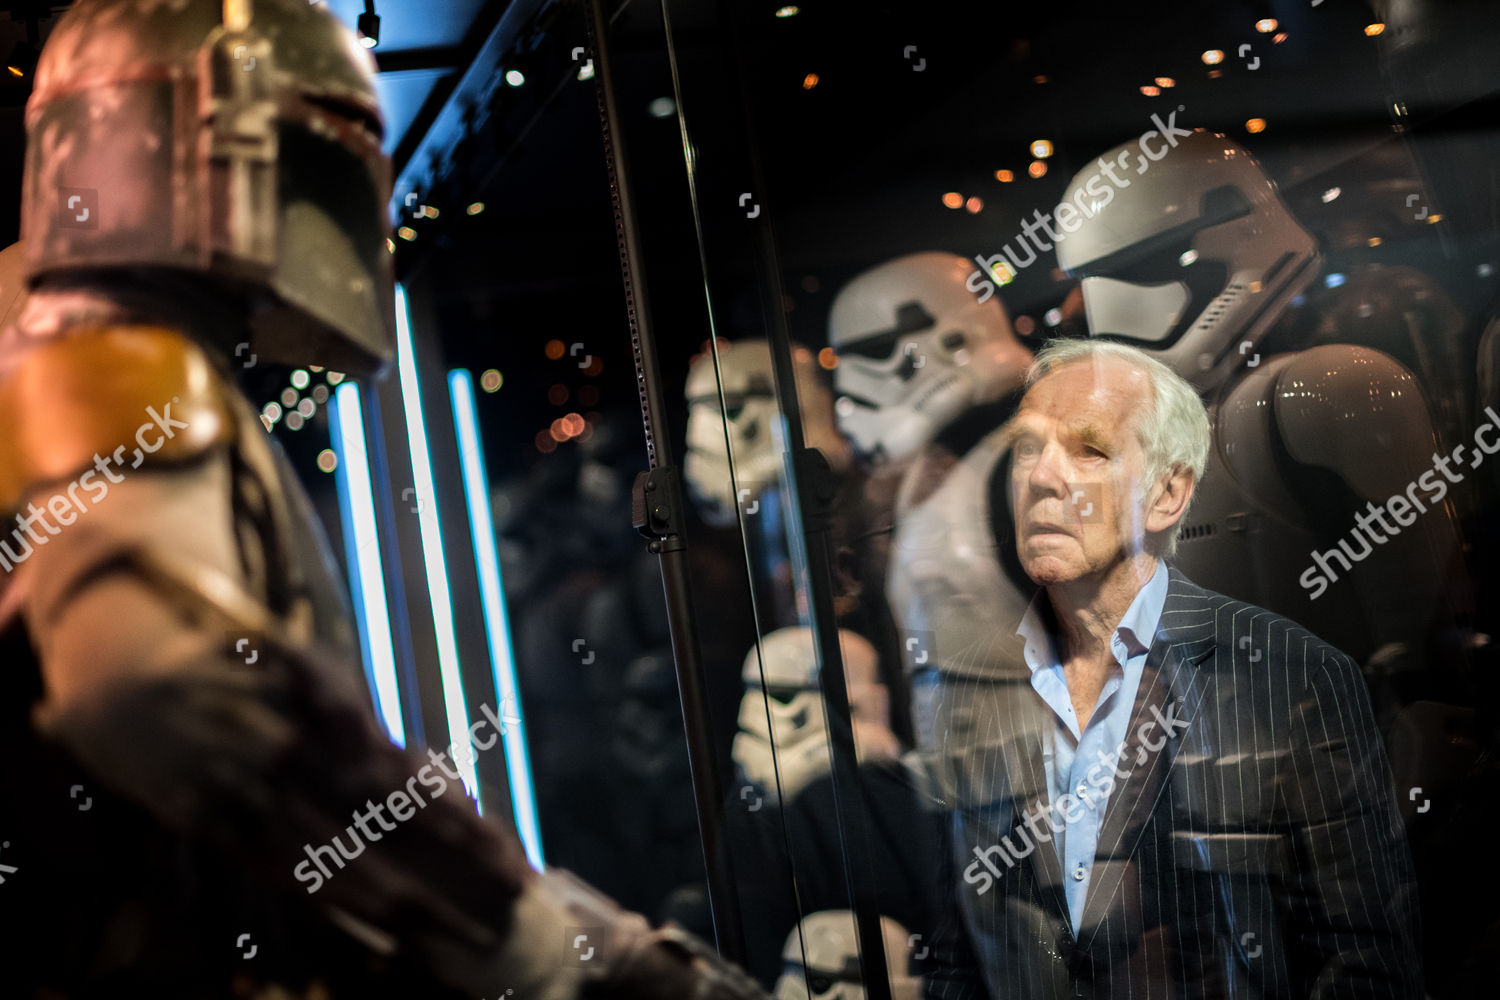 Stockfoto von Star Wars Identities exhibition photocall, London, UK - 26 Jul 2017